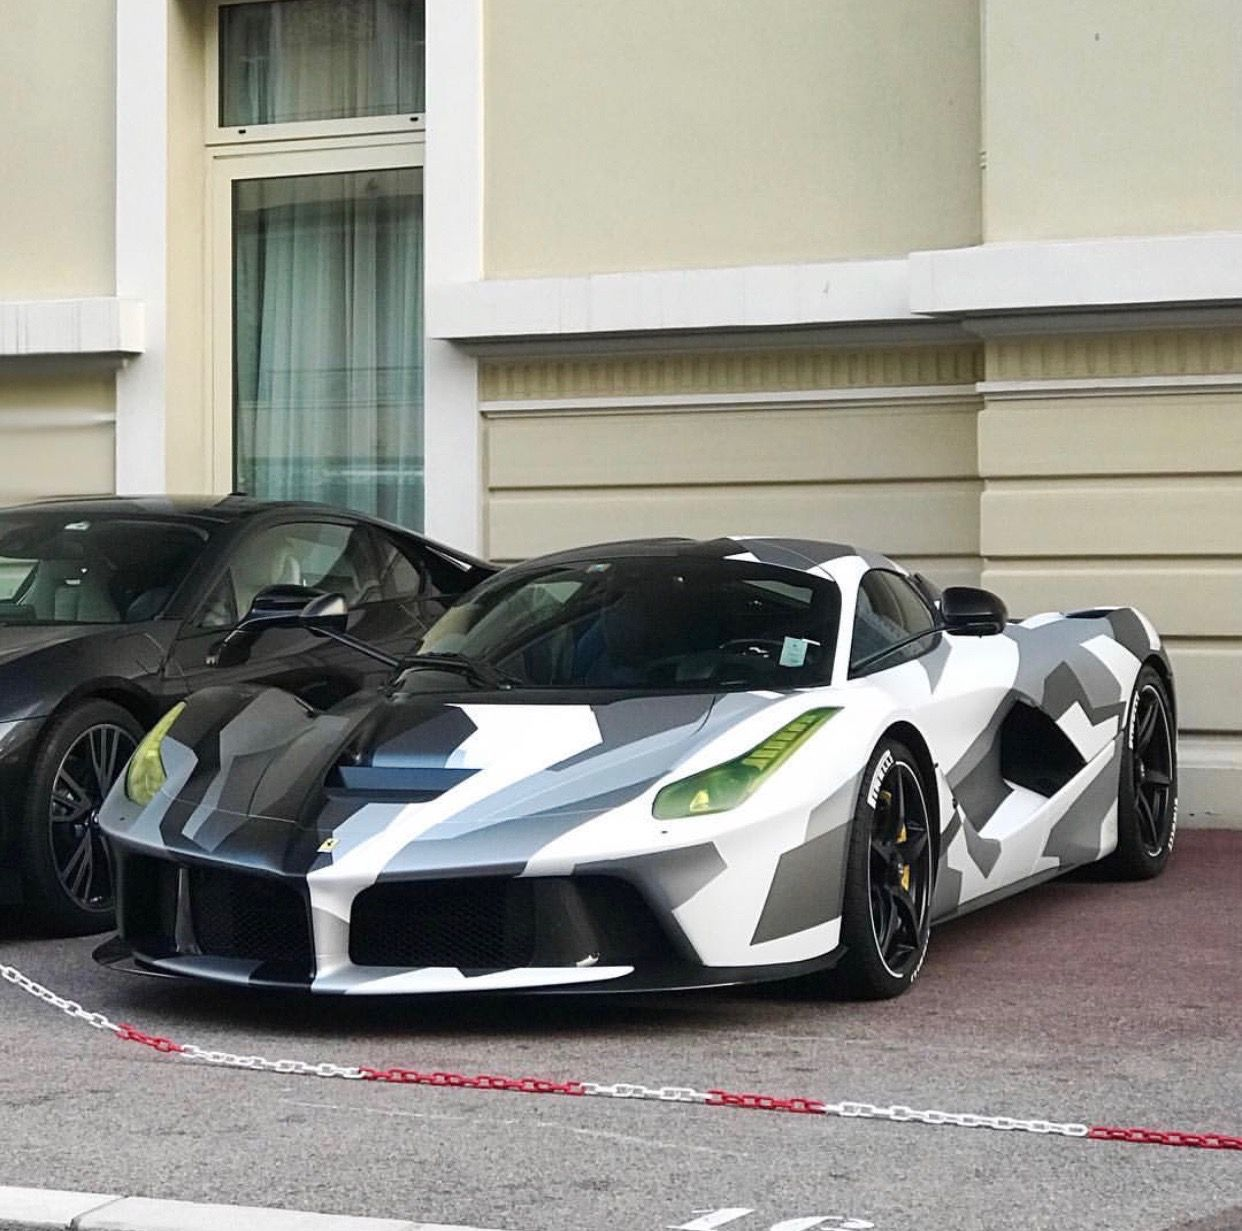 Ferrari Laferrari Painted In Grigio And Wrapped In A Black White And Gray Rectangular Camouflage Photo Taken By Seenthroughglass On Instagram Owne Sieu Xe